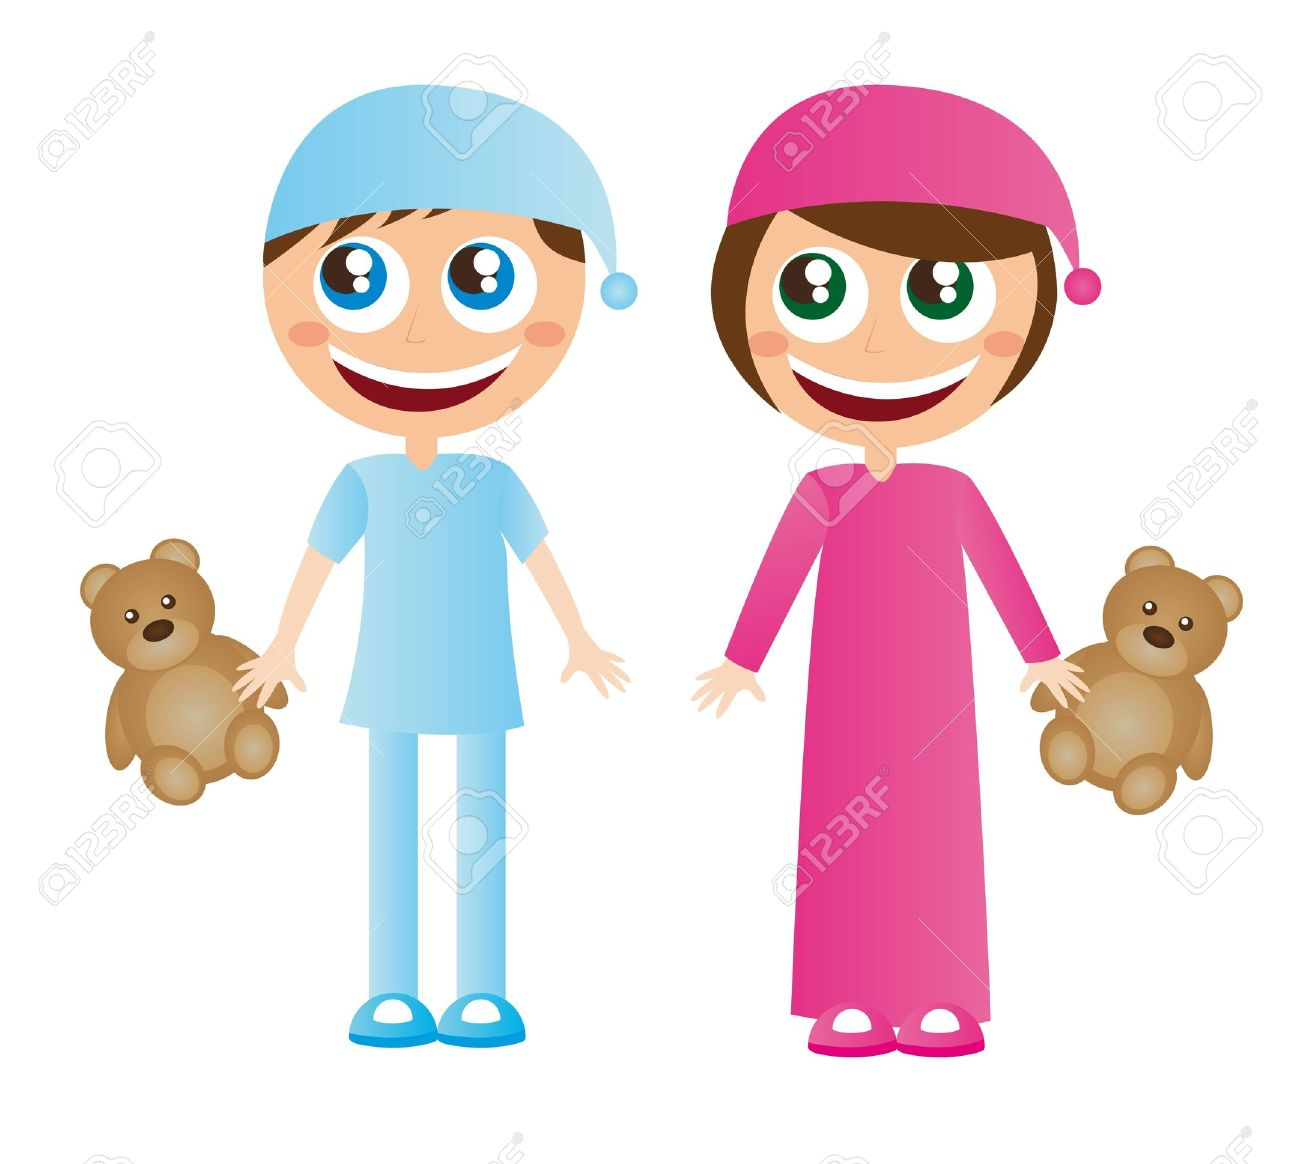 Children in pajamas with hat cartoons with teddy bear vector Stock Vector - 11549319